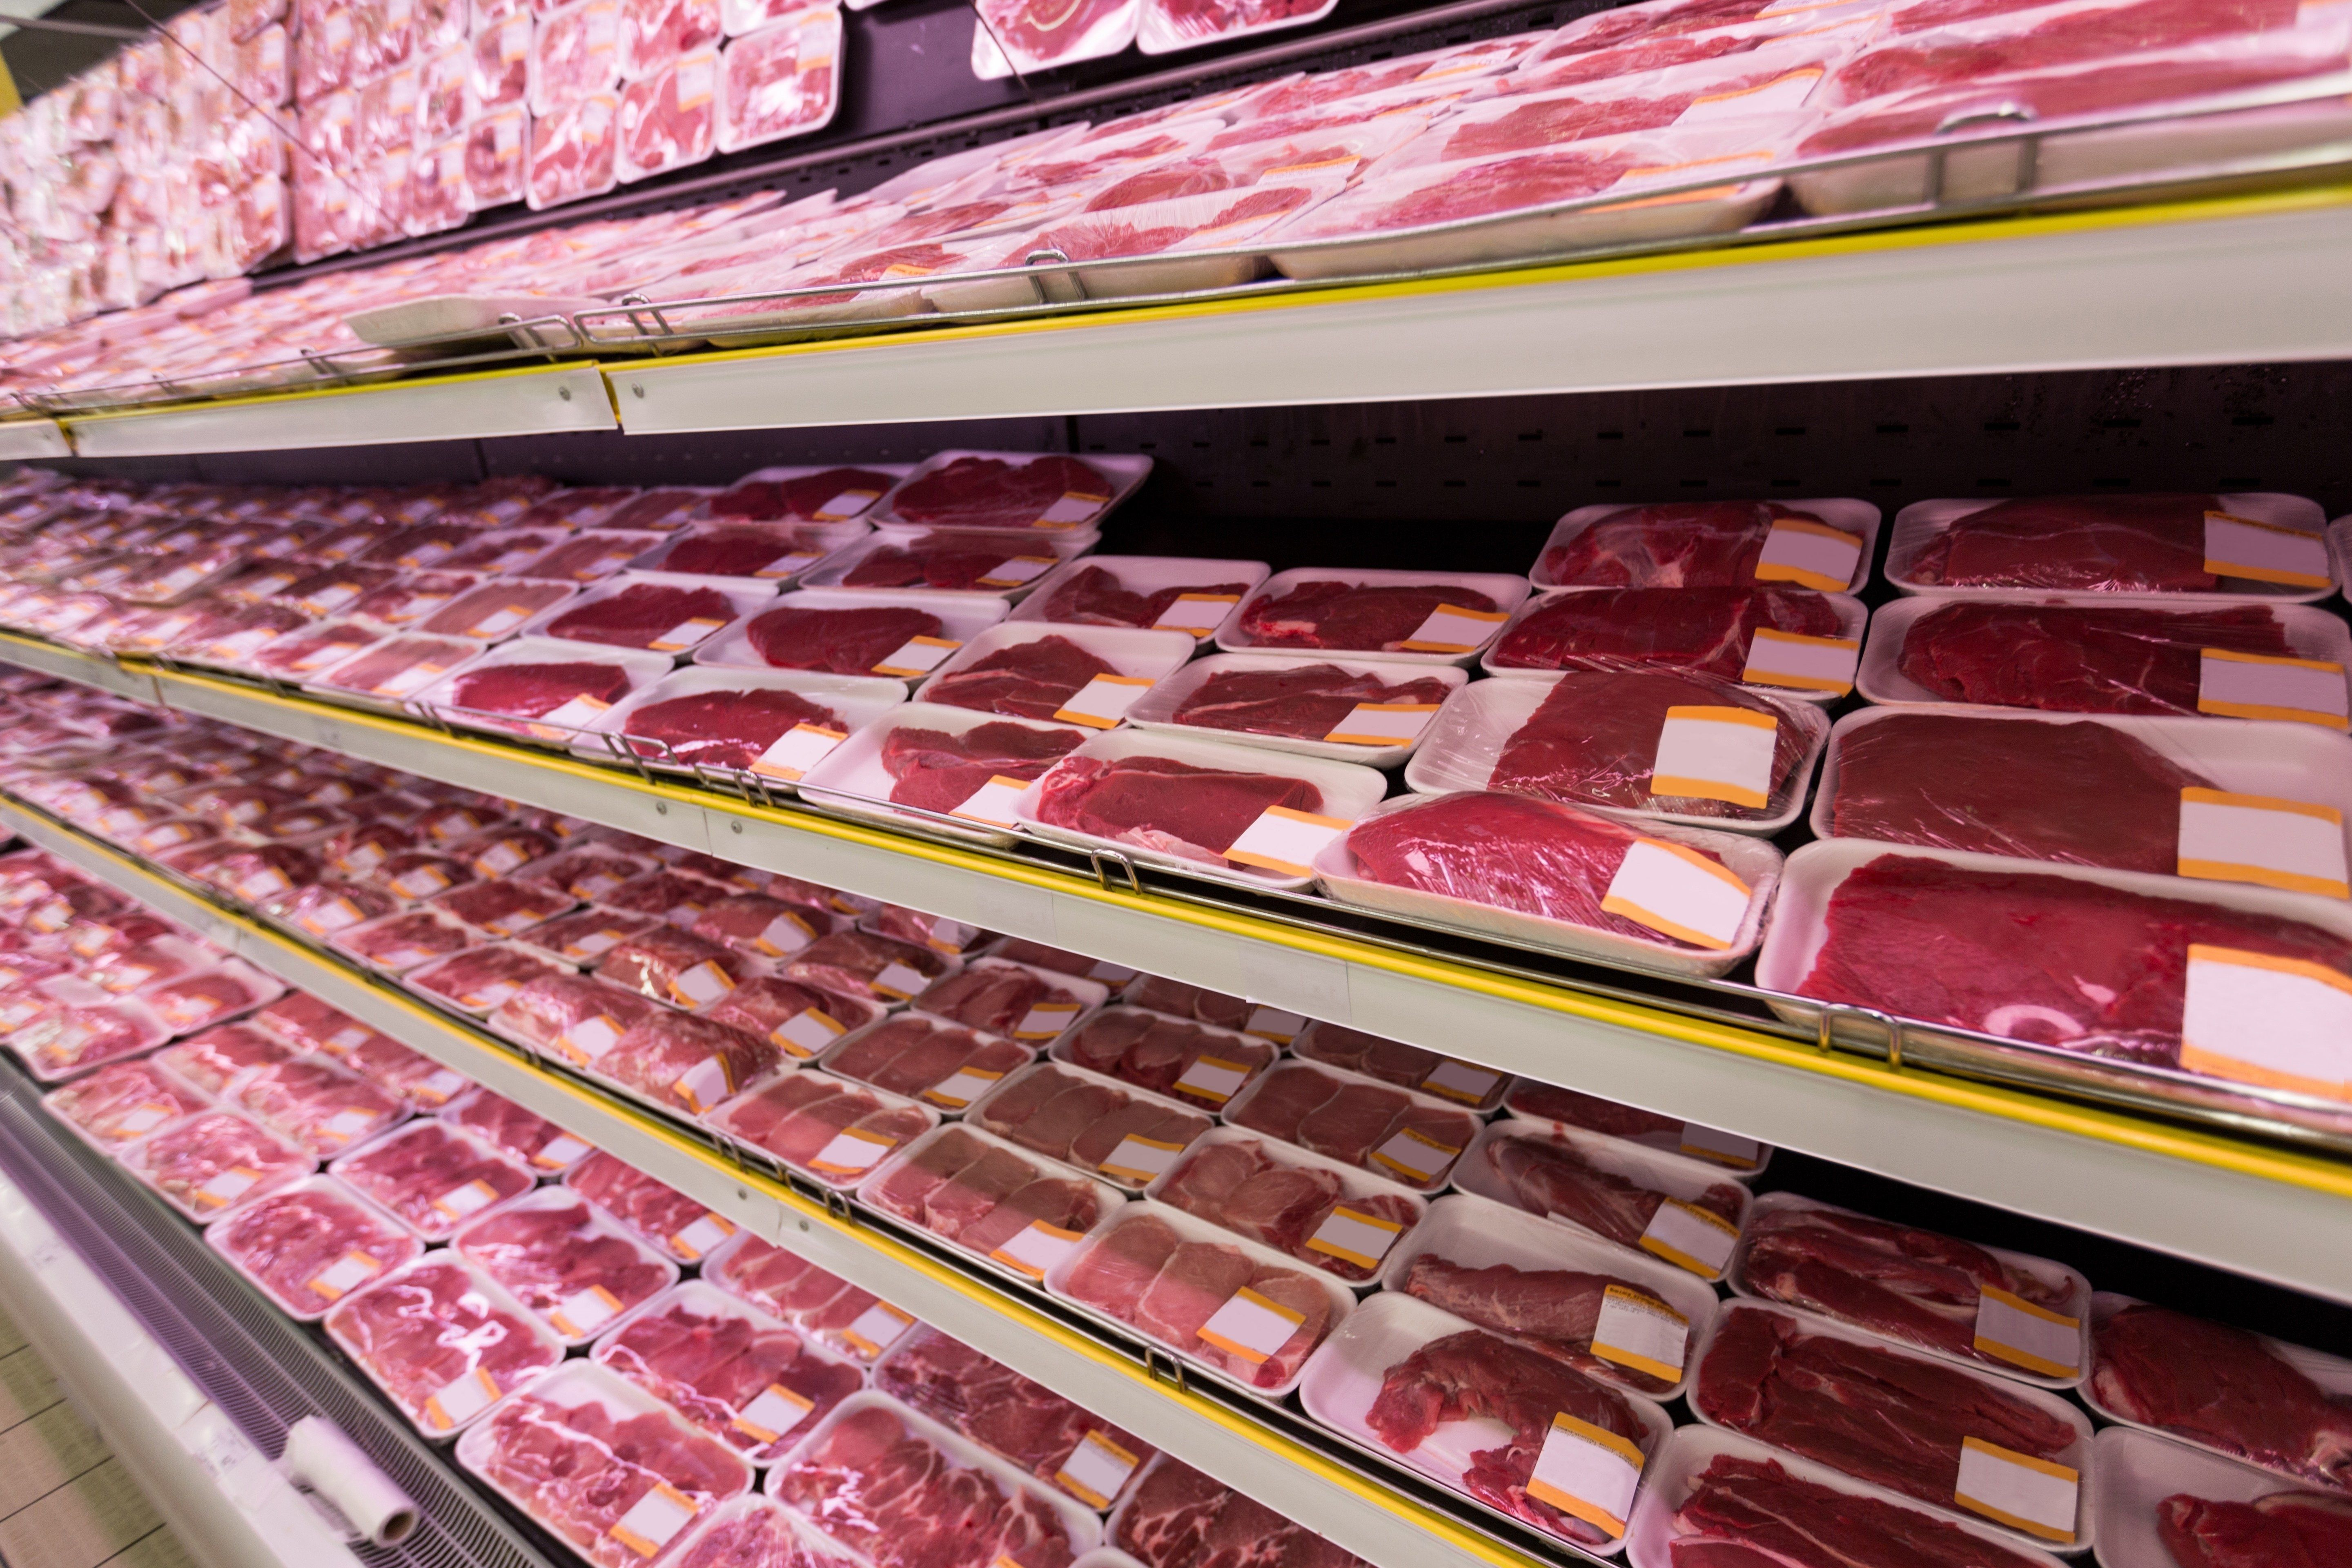 6.5 Million Pounds Of Beef Have Been Recalled Due To Salmonella